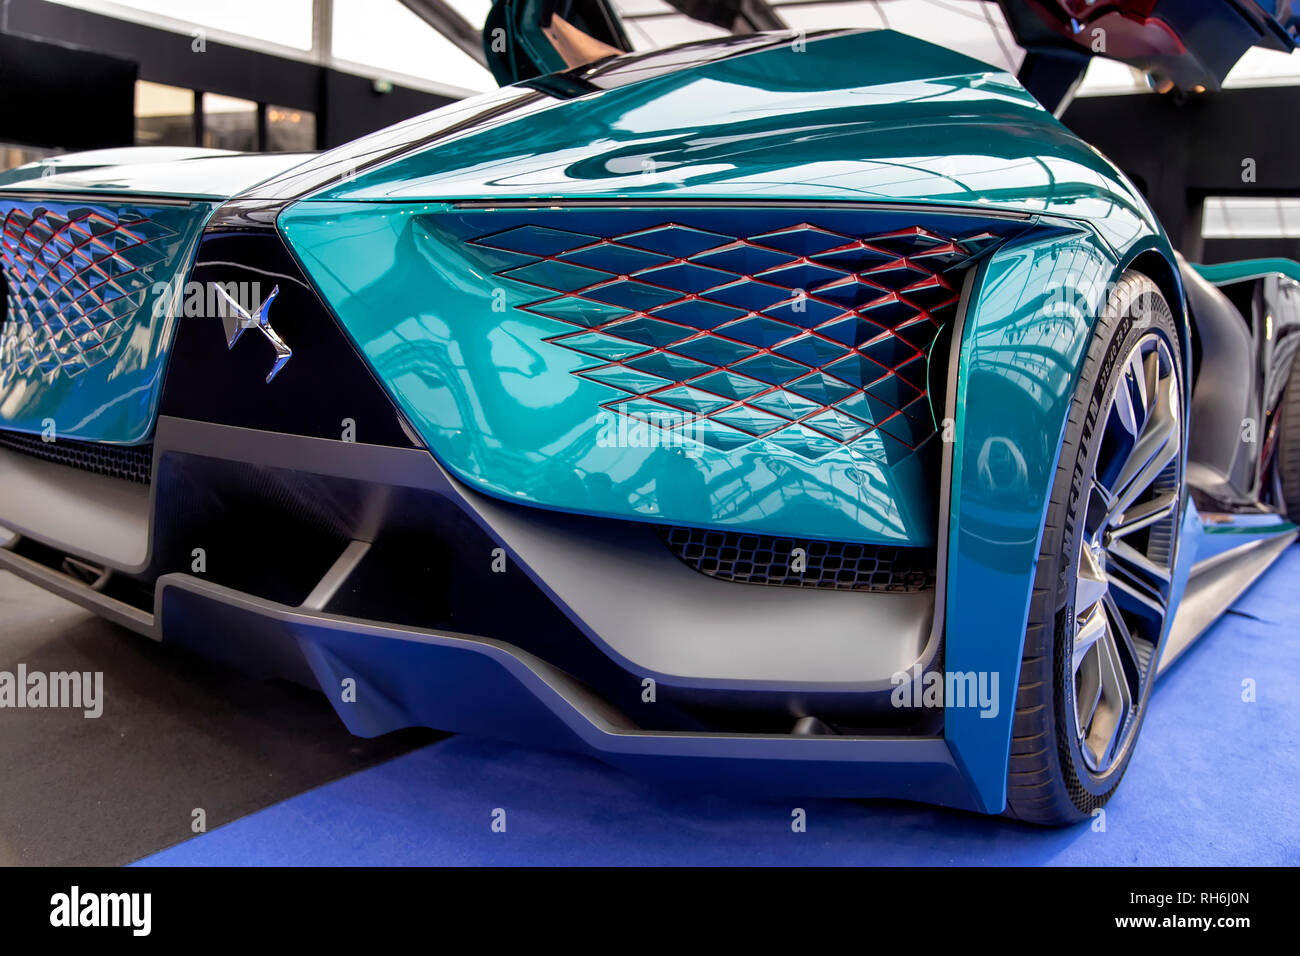 Paris, France. 31st Jan, 2019. DS X E-Tense - The International Automobile Festival brings together in Paris the most beautiful concept cars made by car manufacturers, from January 30th to February 31st, 2019. Credit: Bernard Menigault/Alamy Live News - Stock Image